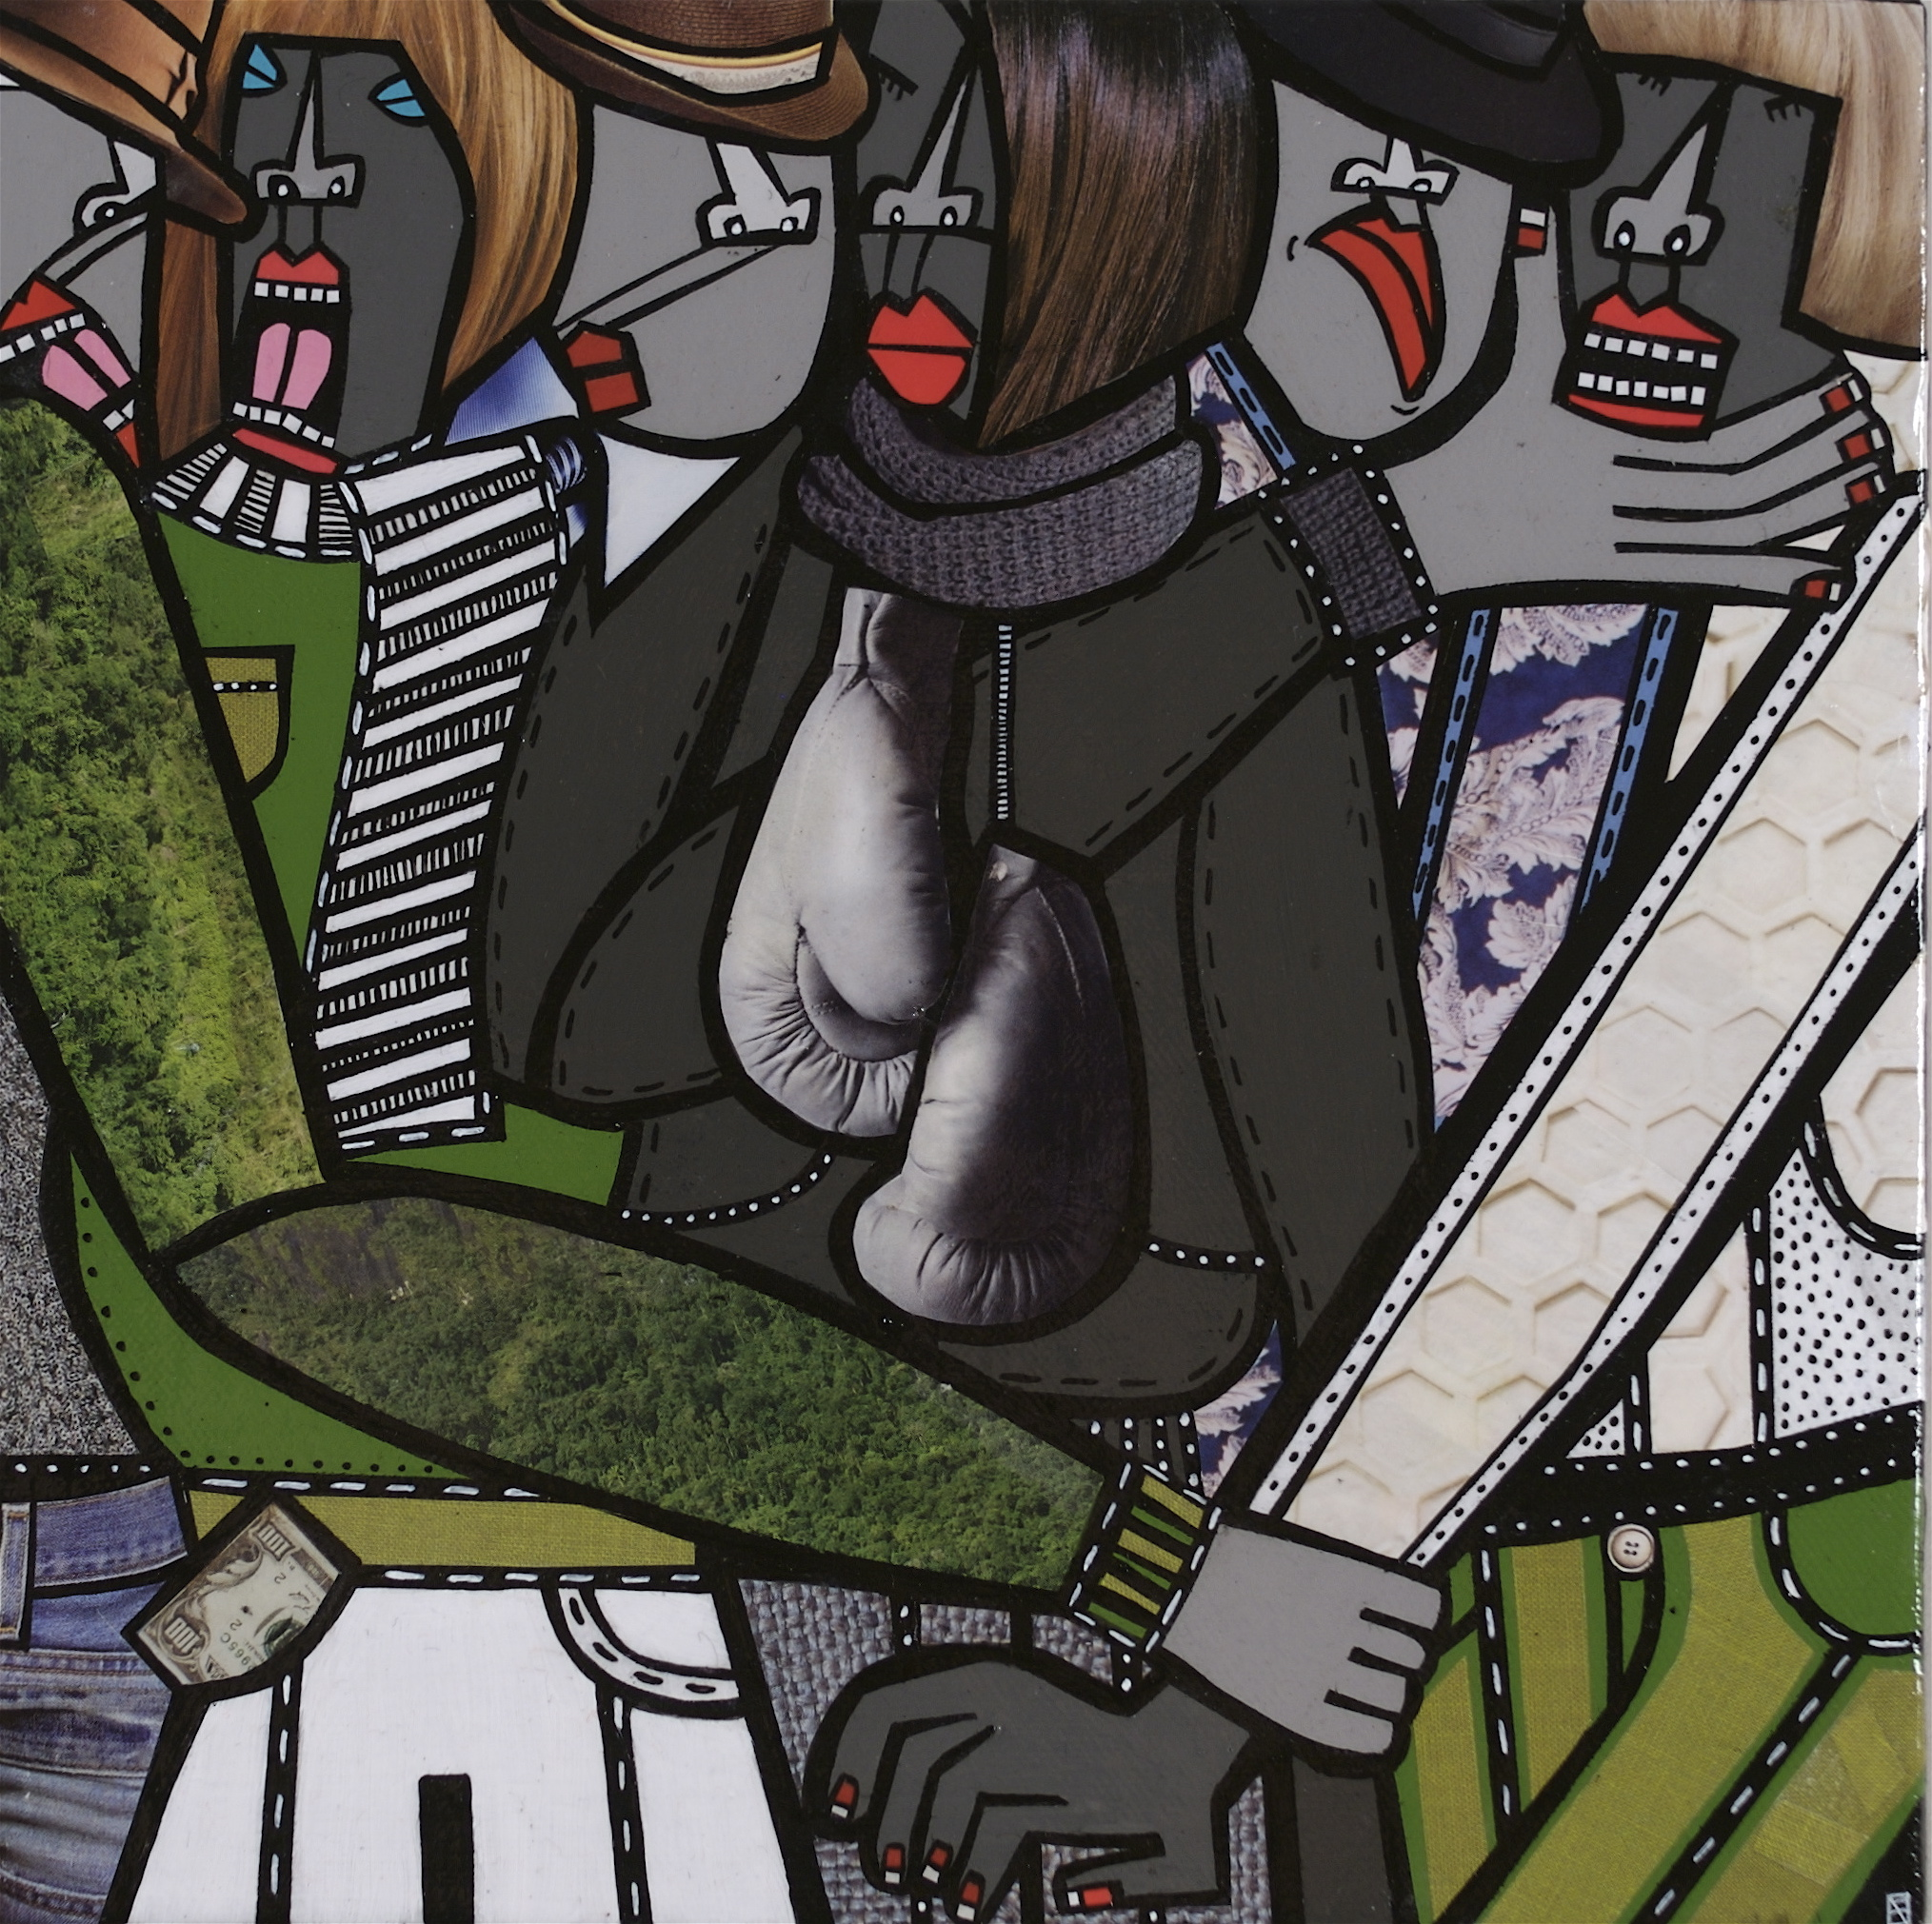 """Devilution 5, acrylic and paper collage on canvas, 10"""" x10"""", 2009, private collection"""